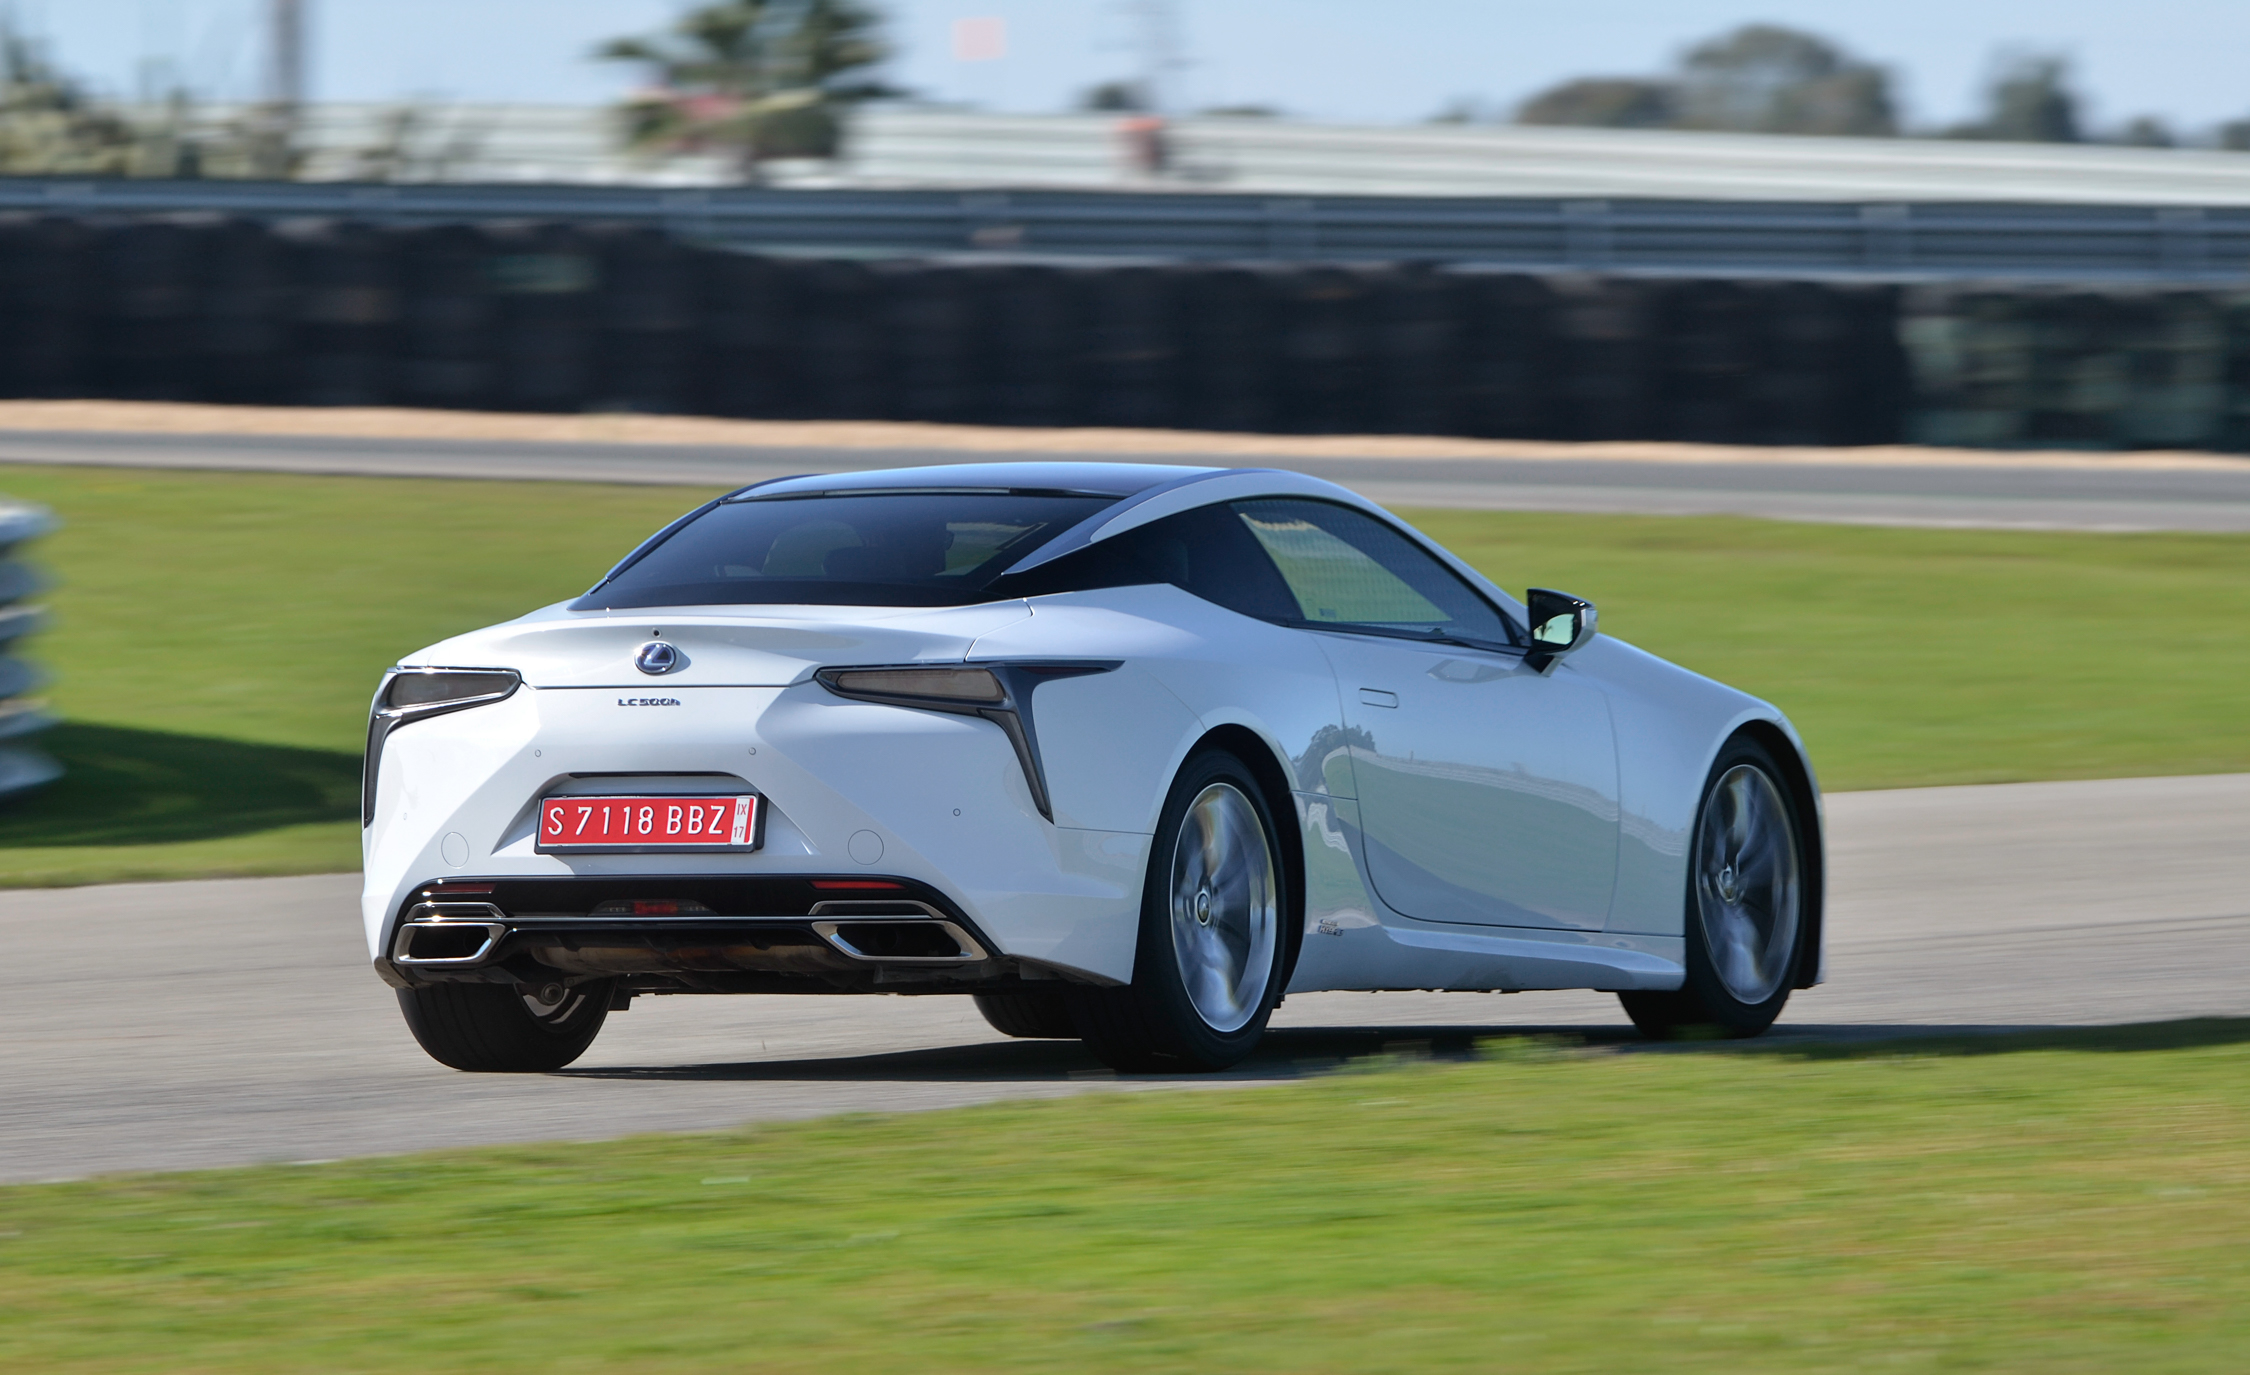 2018 Lexus Lc 500h White Test Drive Rear View (Photo 29 of 84)